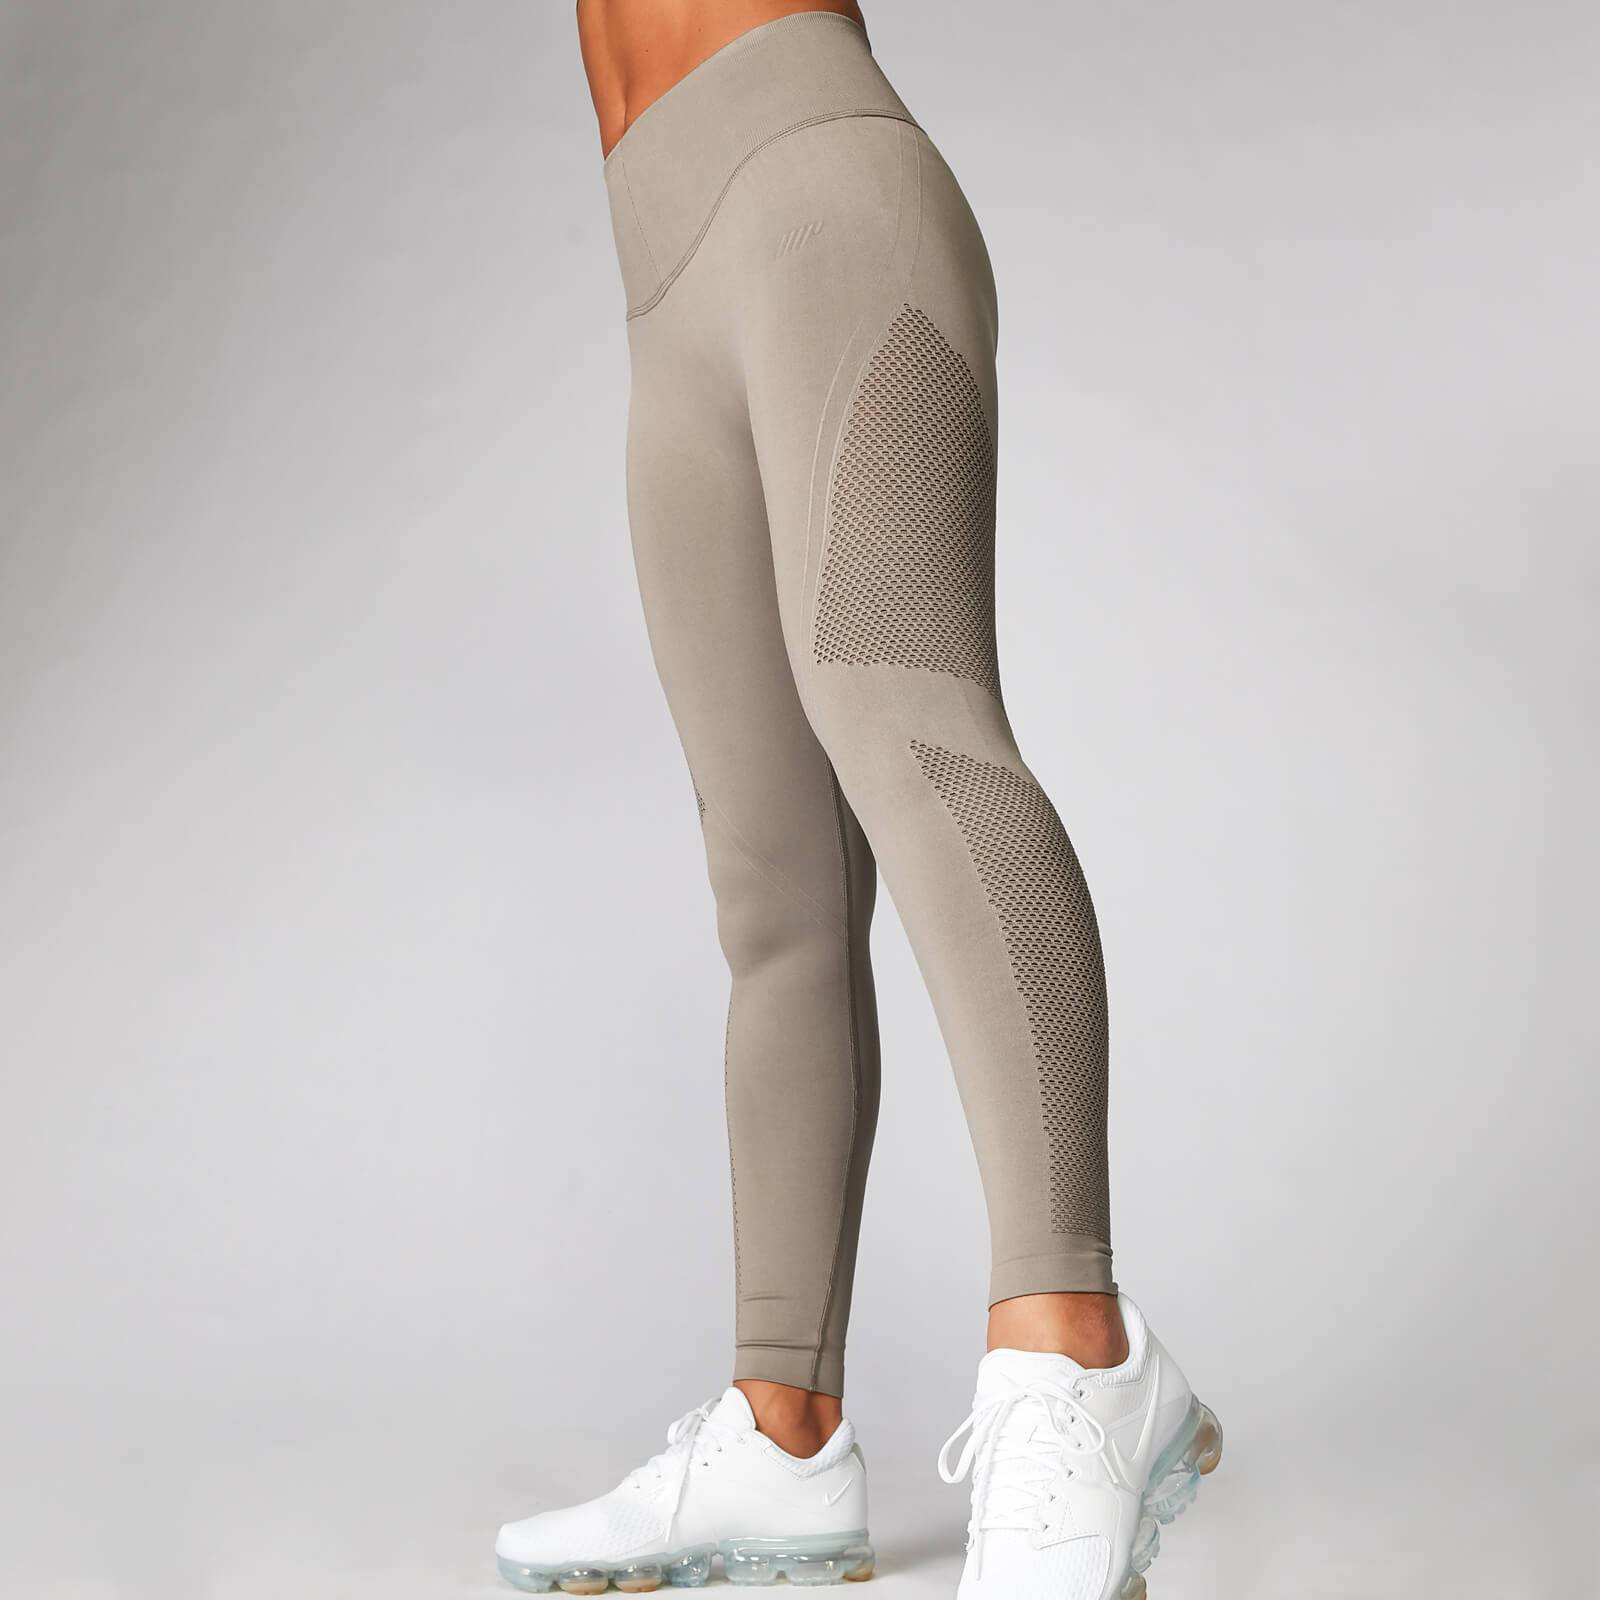 Myprotein Shape Seamless Leggings - Taupe - L